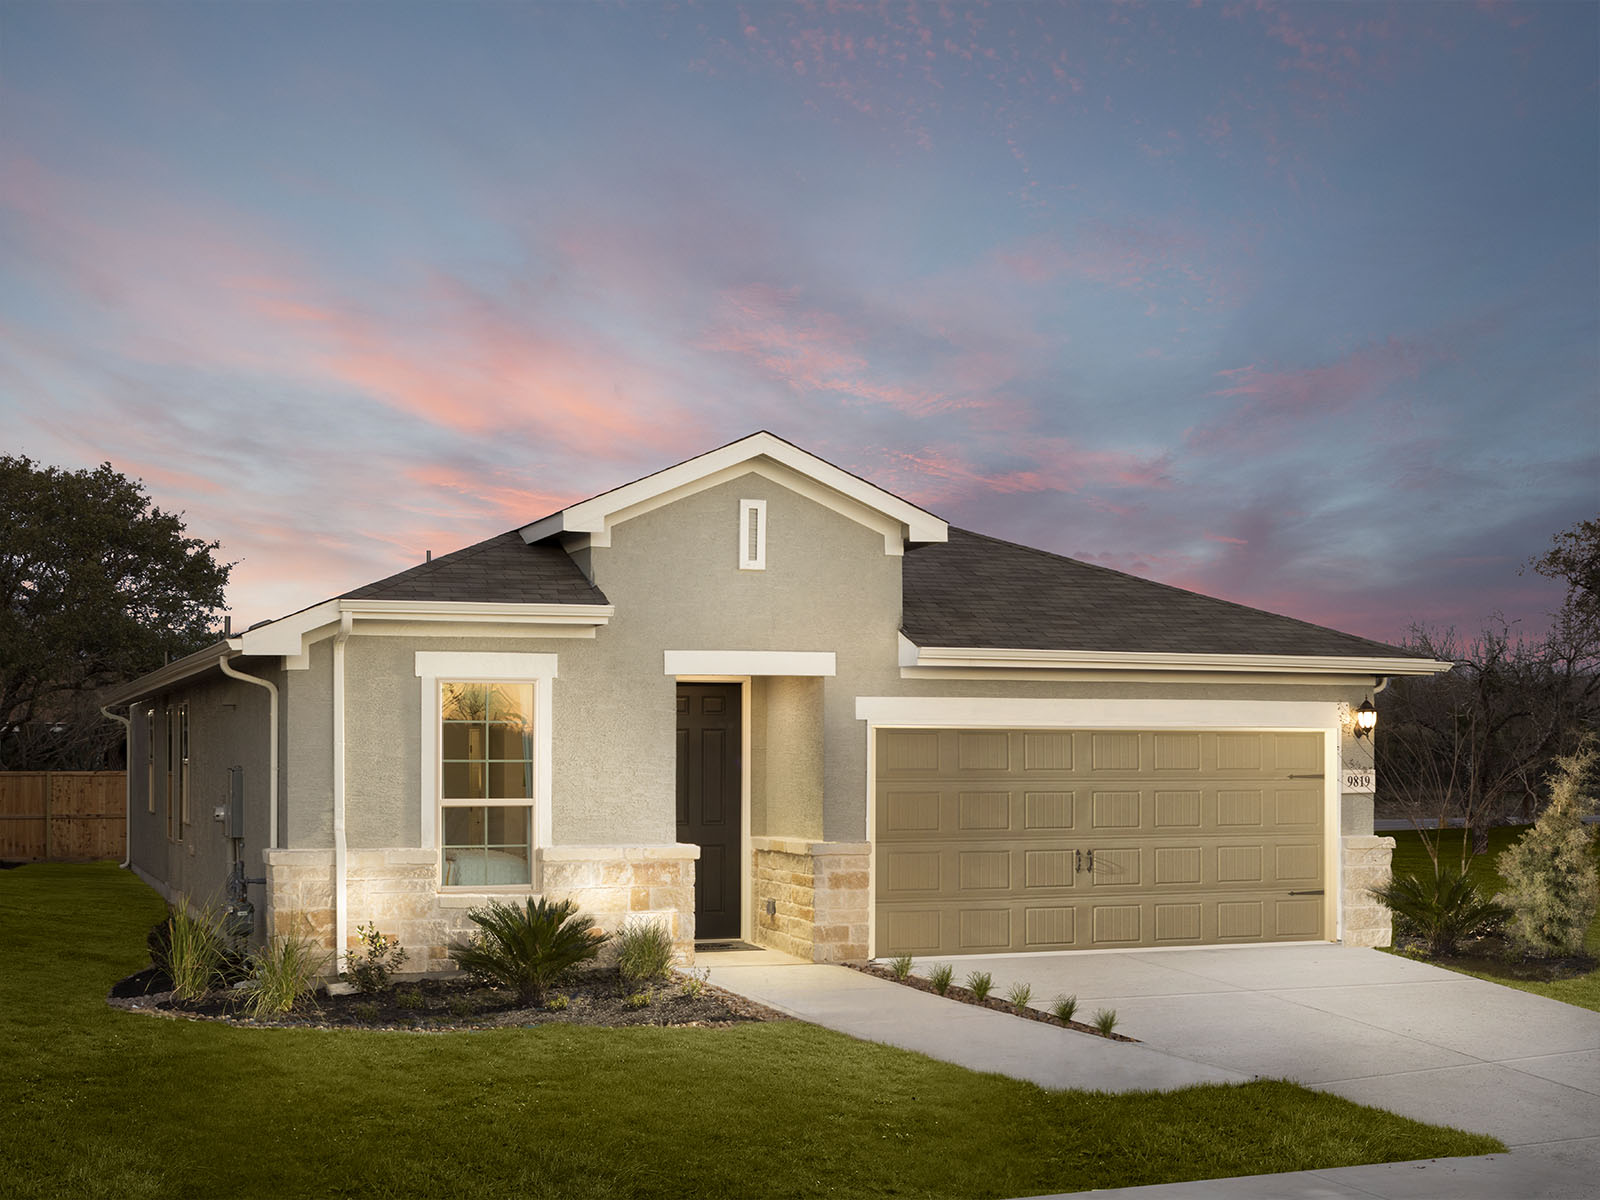 small resolution of meritage homes for sale in san antonio texas wiring a house cost san antonio tx